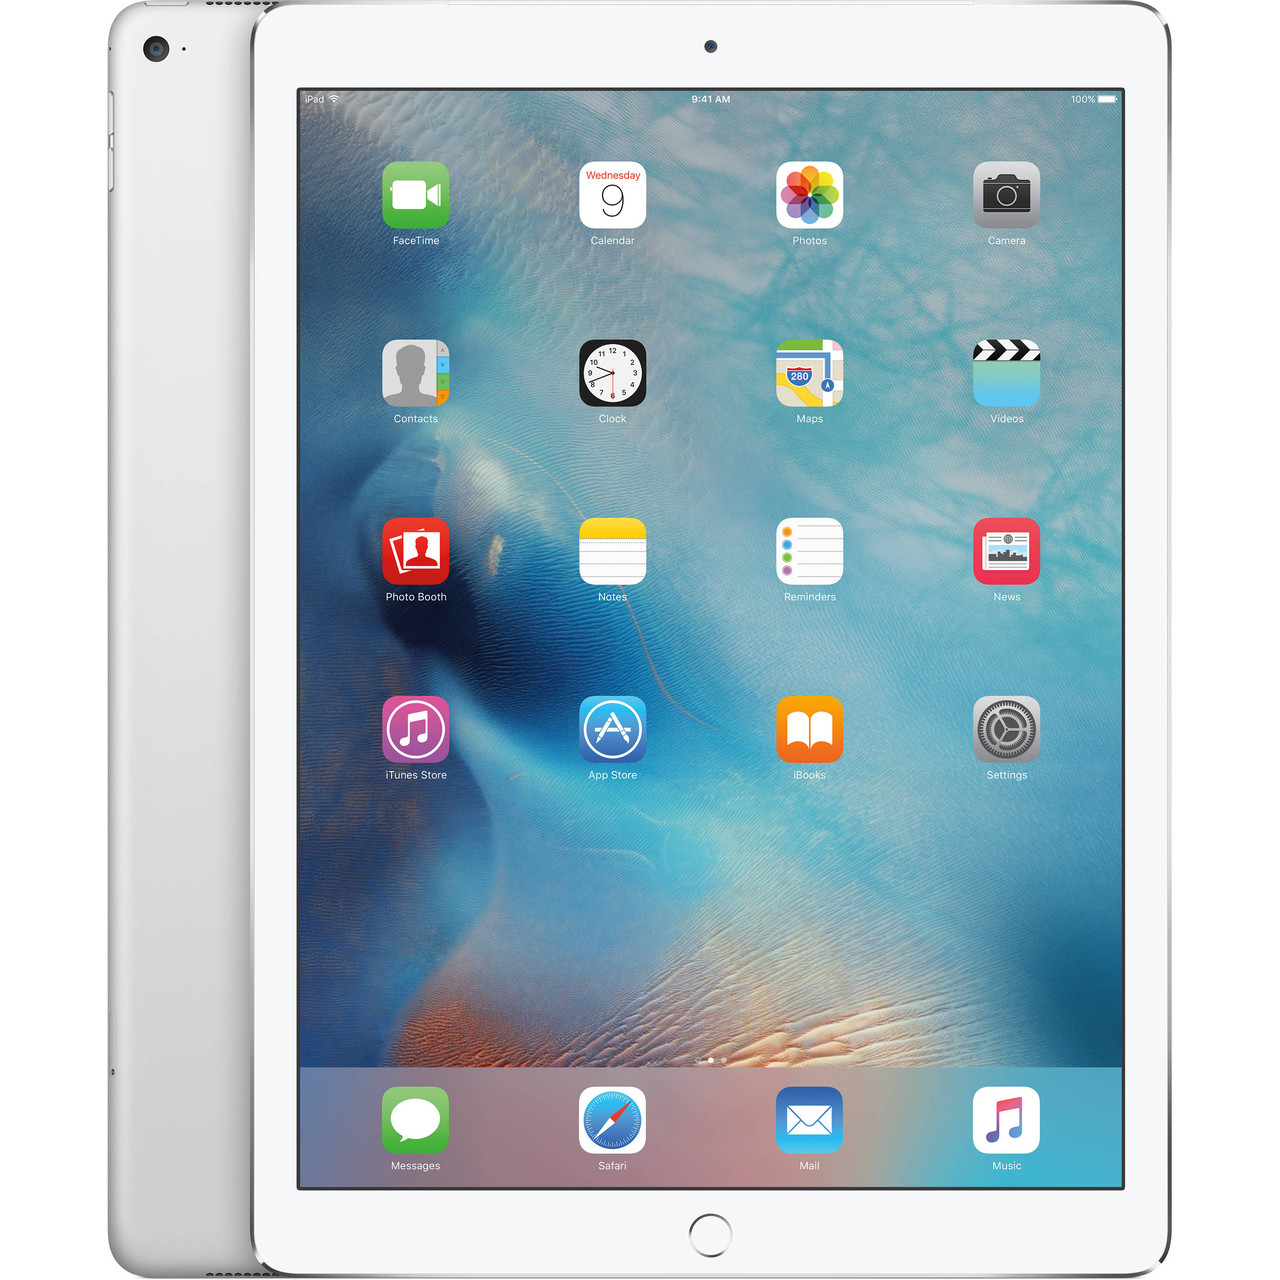 Apple iPad Air 2 16Gb Wi-Fi Silver - Интернет-магазин Hotmart в Алматы